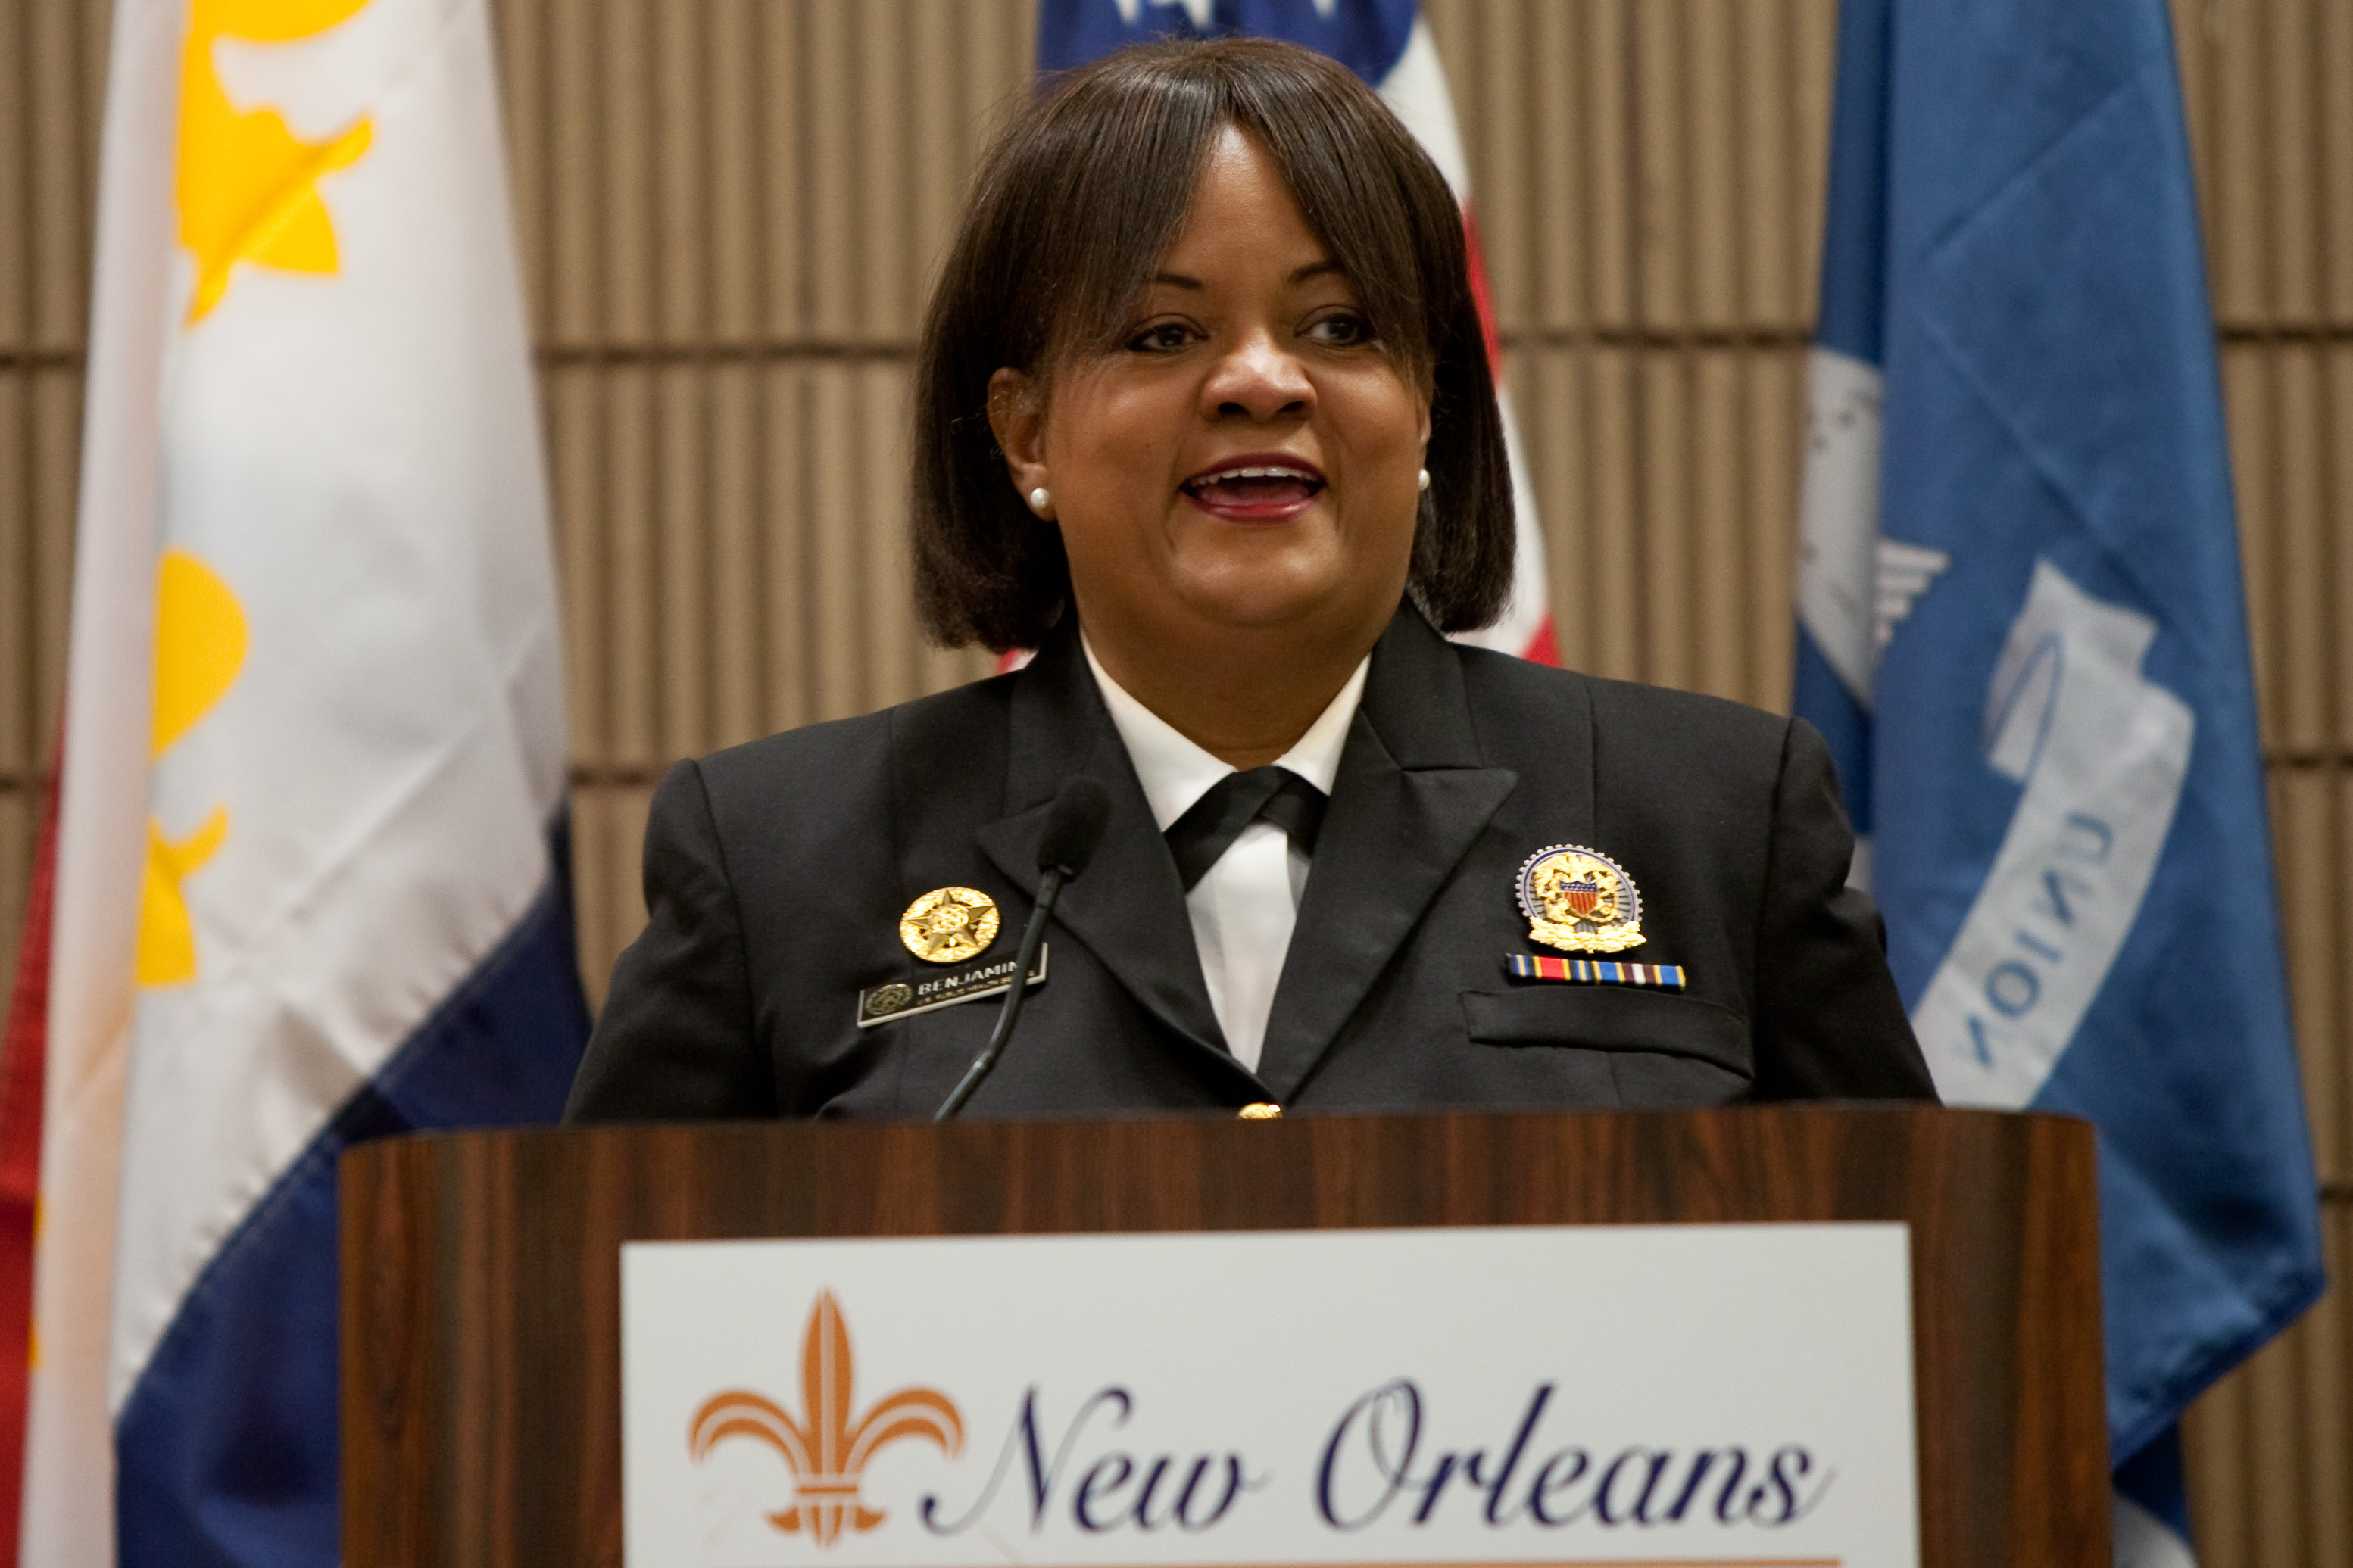 U.S. Surgeon General Dr. Regina M. Benjamin at New Orleans Conference